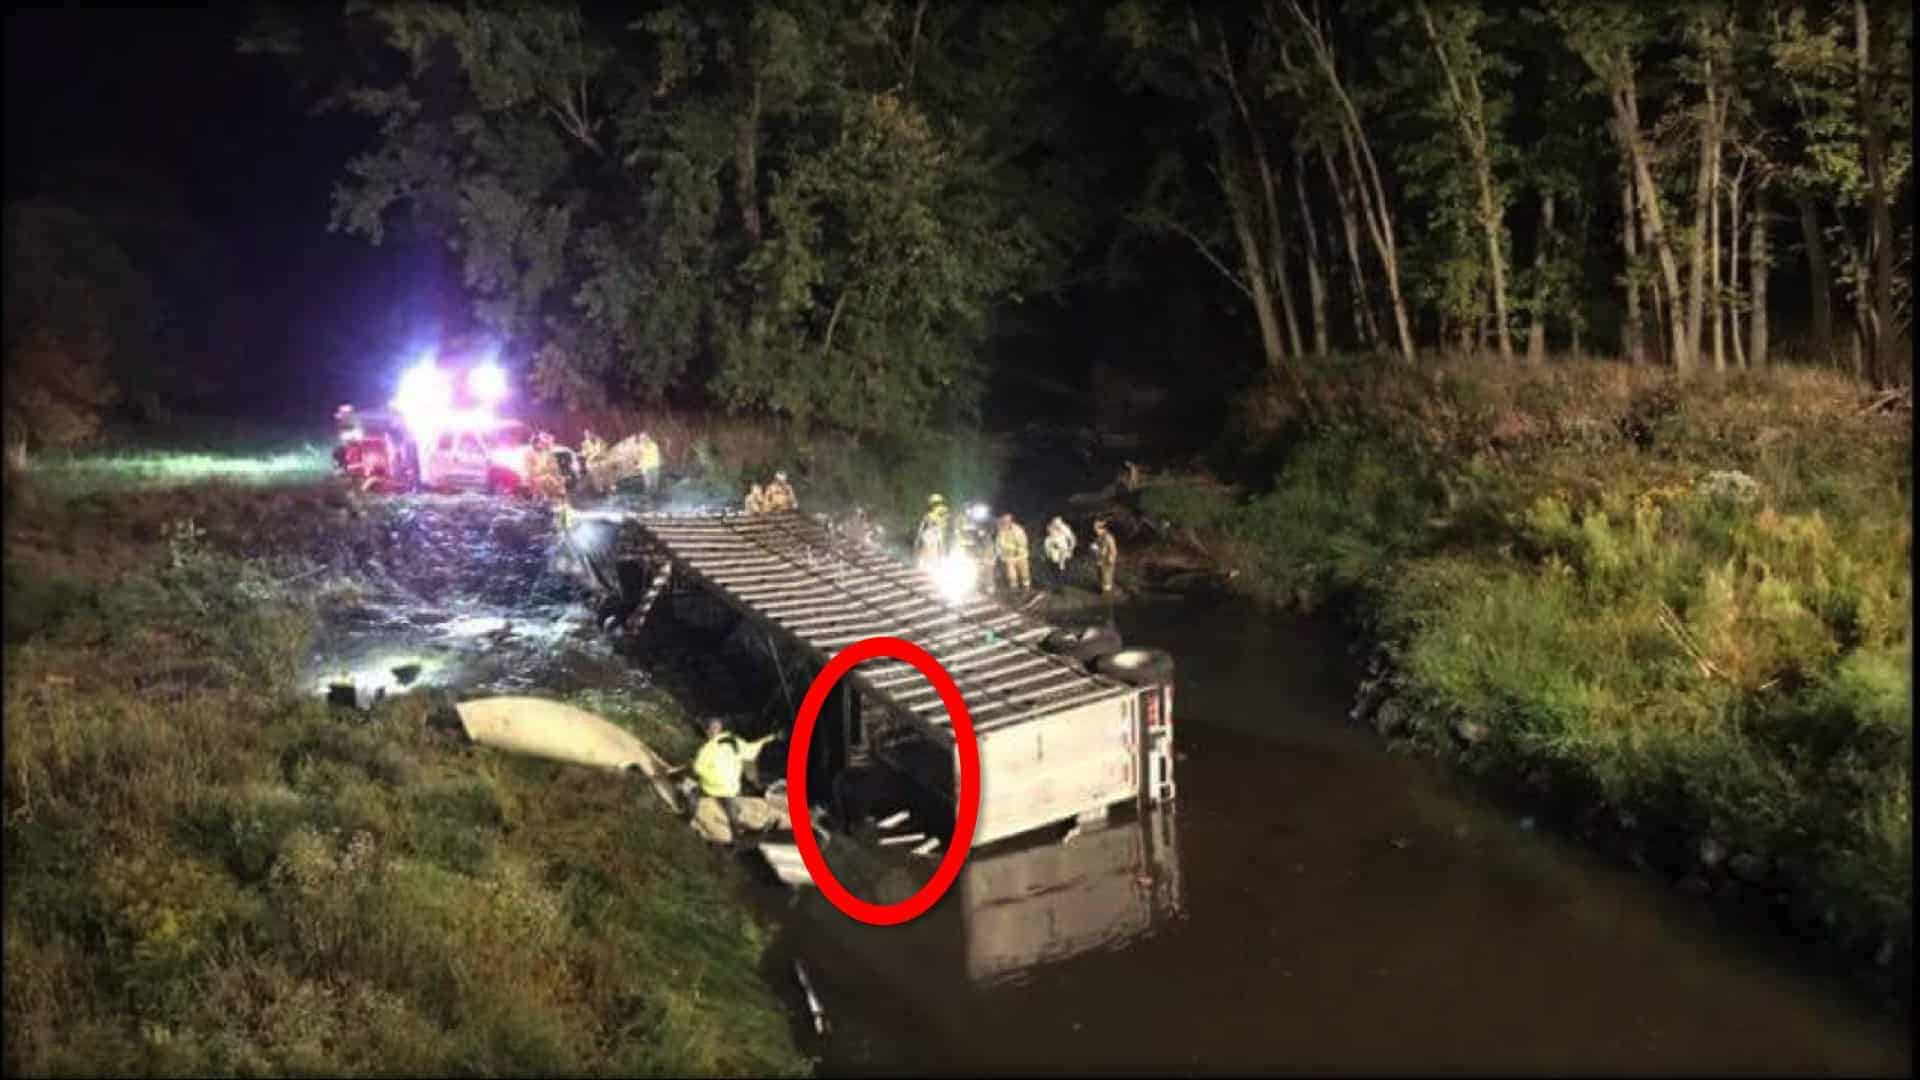 A livestock transport truck overturned on its side in a river, surrounded by rescue workers; an emergency vehicle with its lights on is in the river behind the truck, illuminating the night.